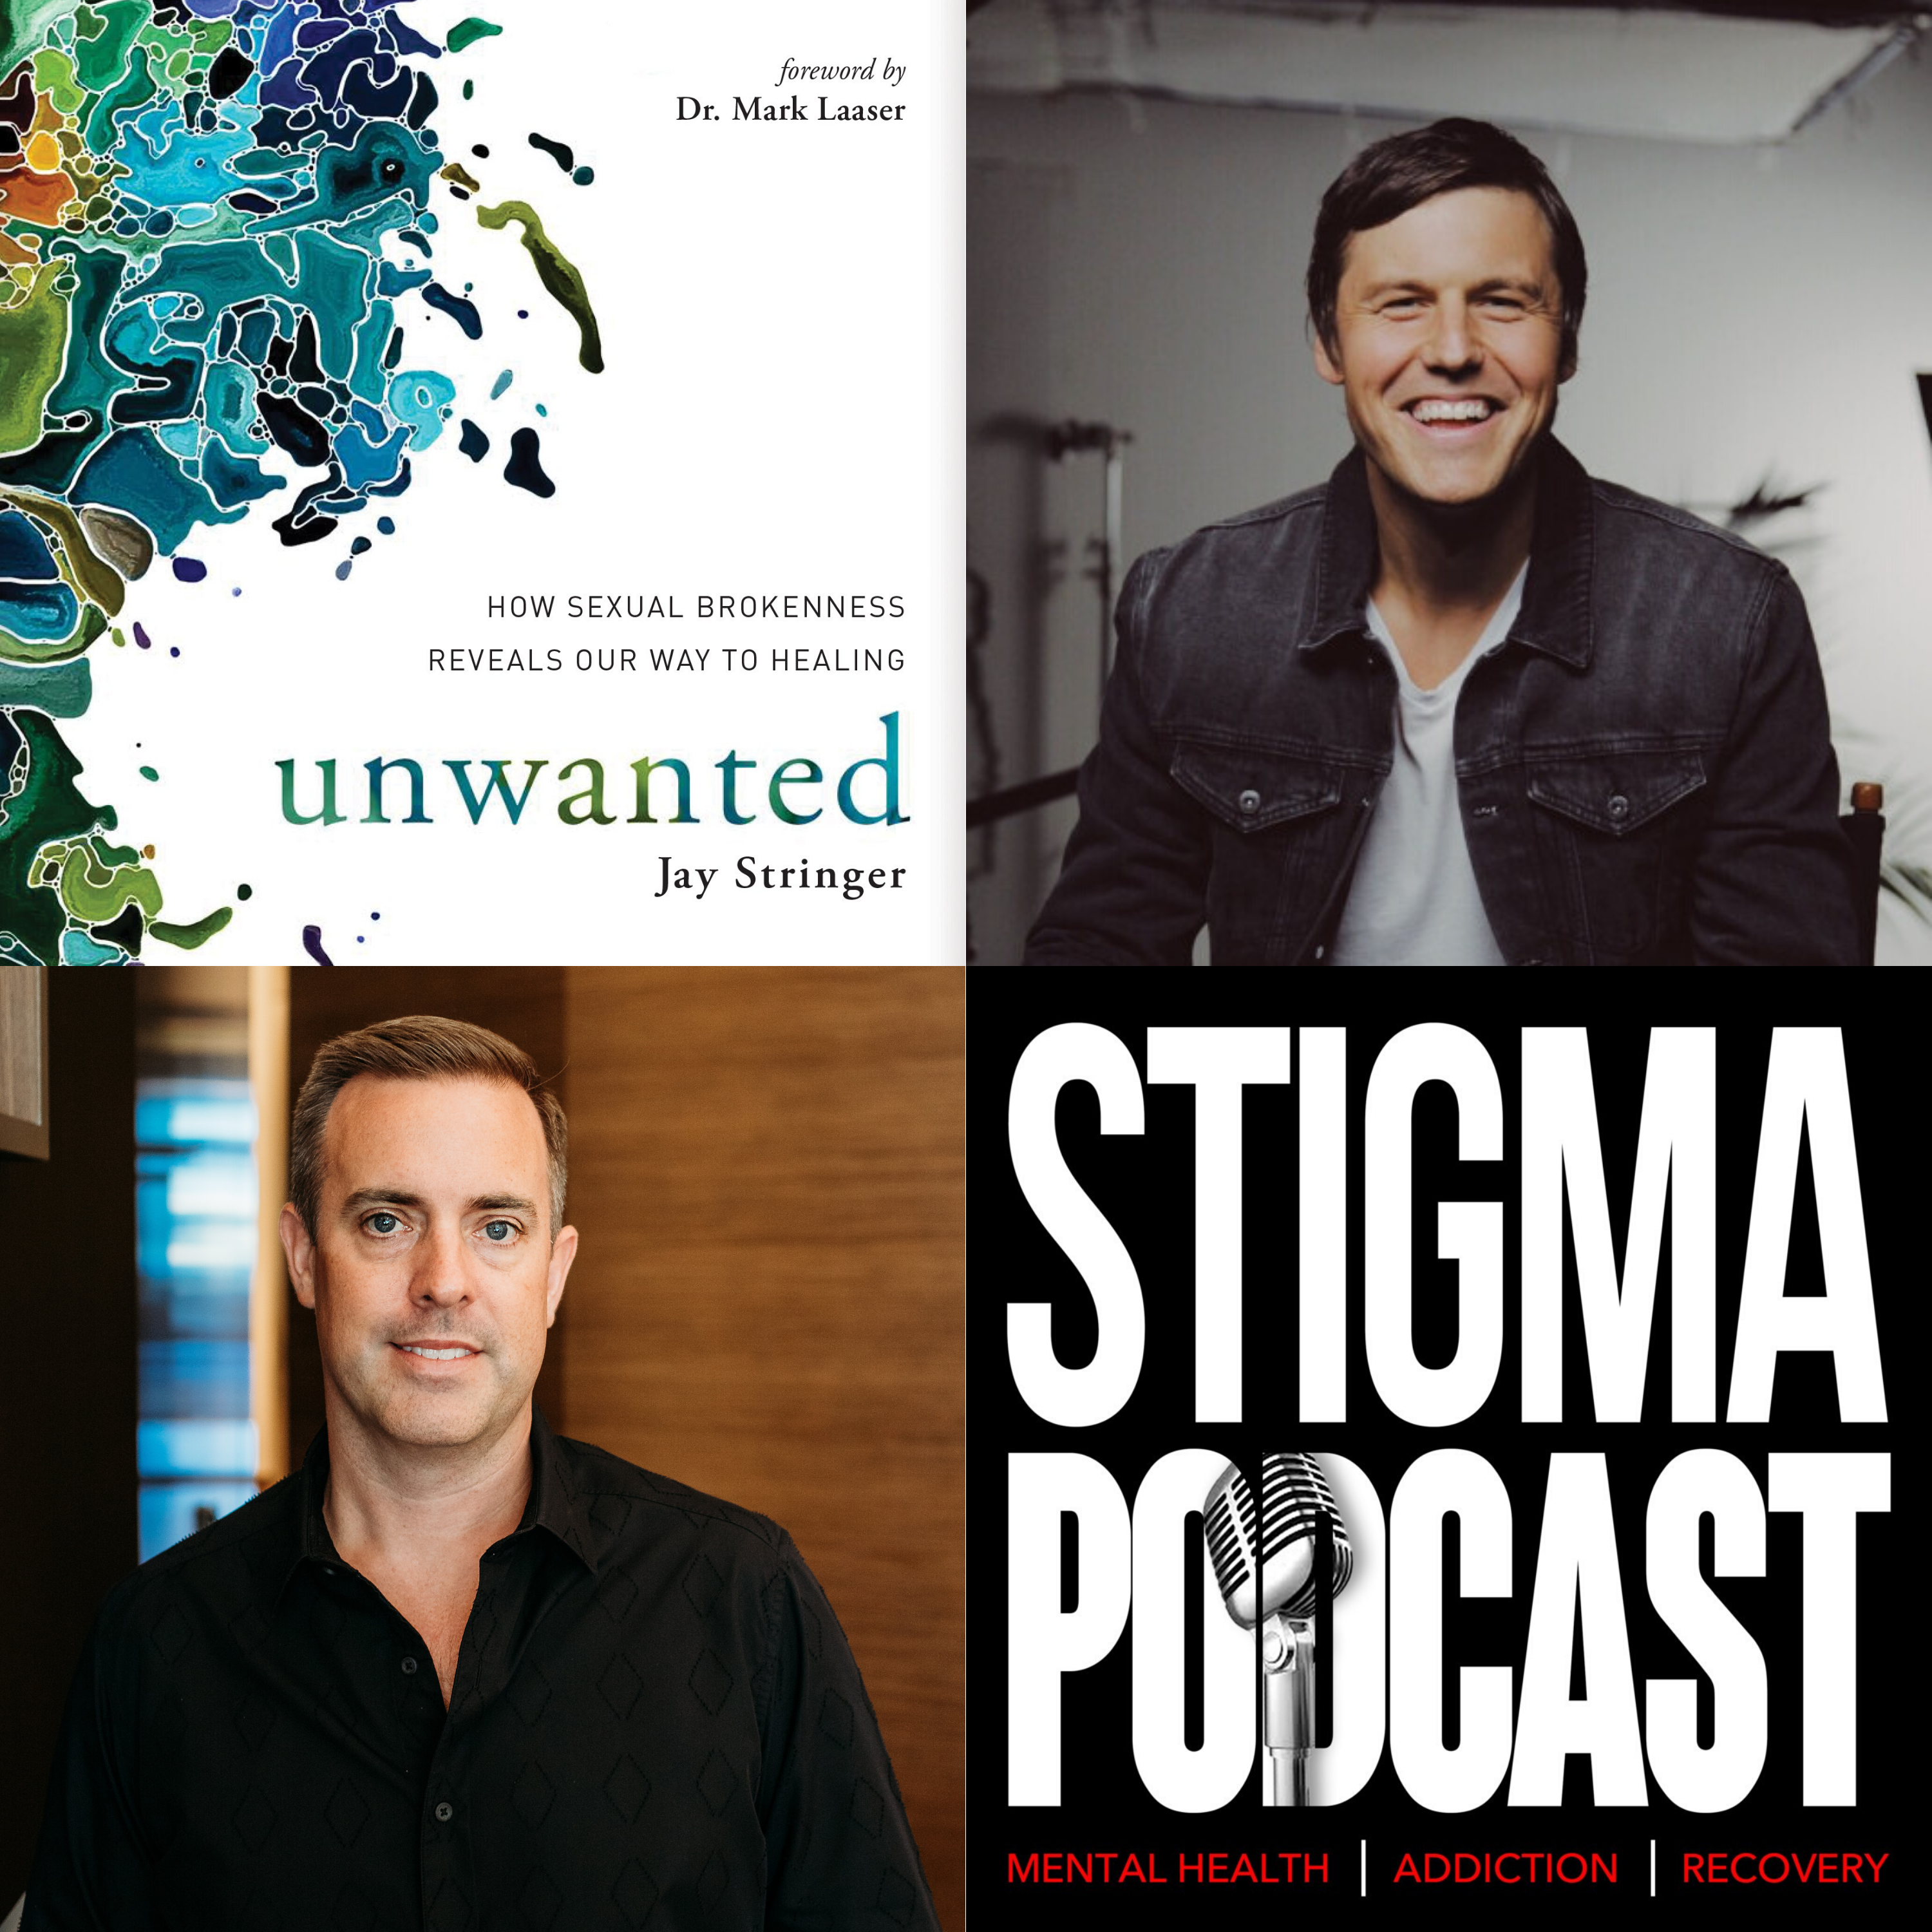 Stigma Podcast - Mental Health - #52 - Unwanted Sexual Behavior: What the Research Shows with Jay Stringer